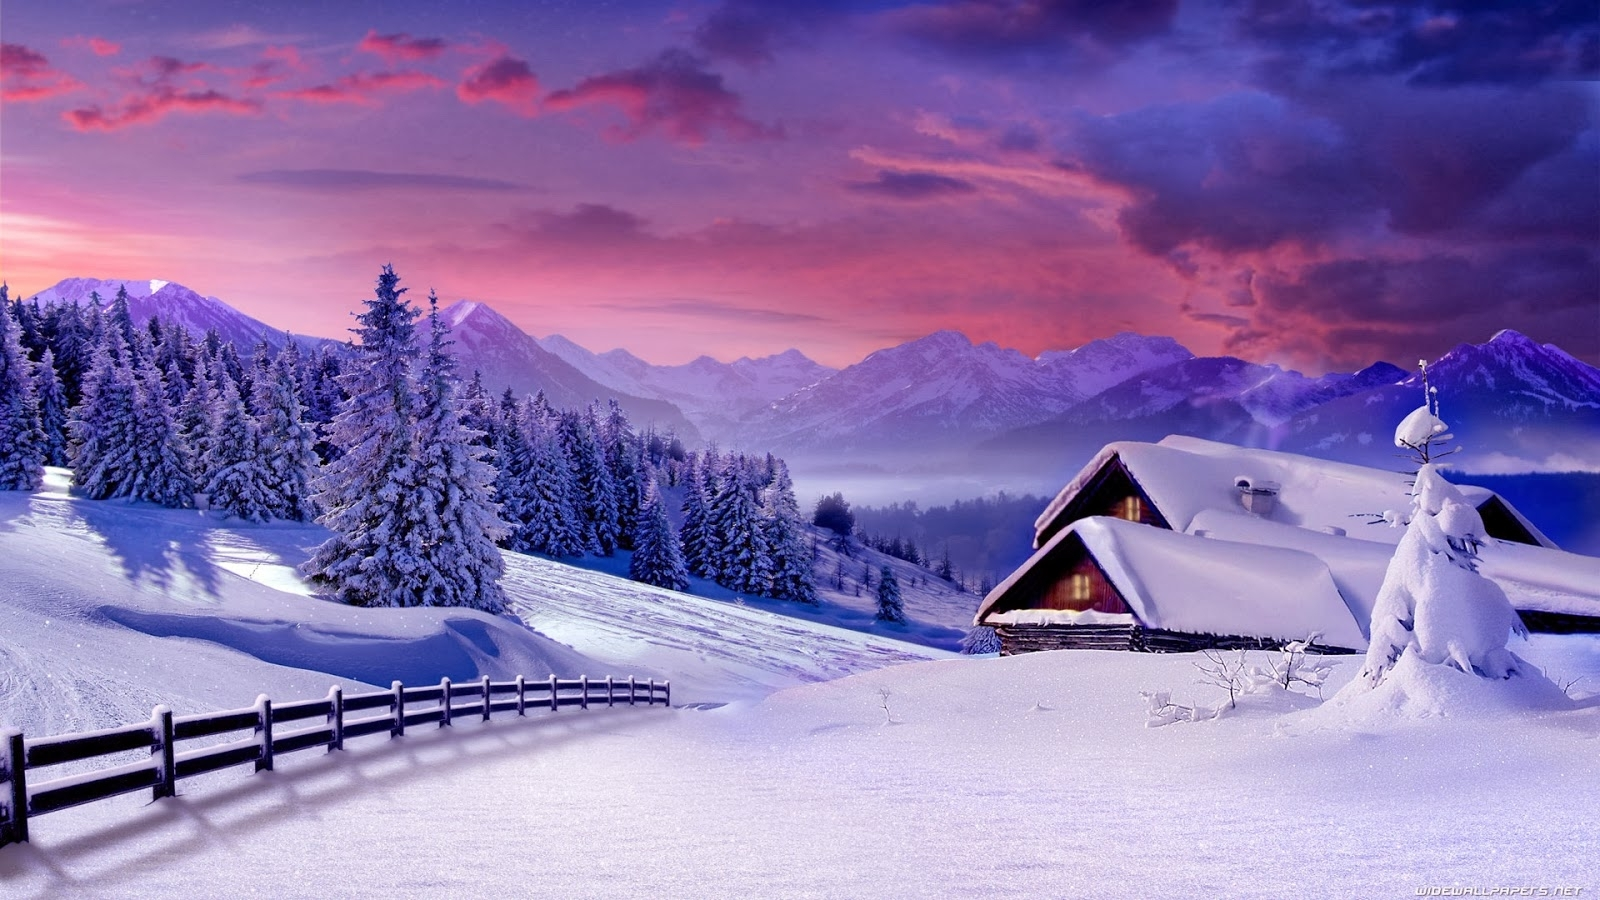 desktop backgrounds 4u: winter scenes